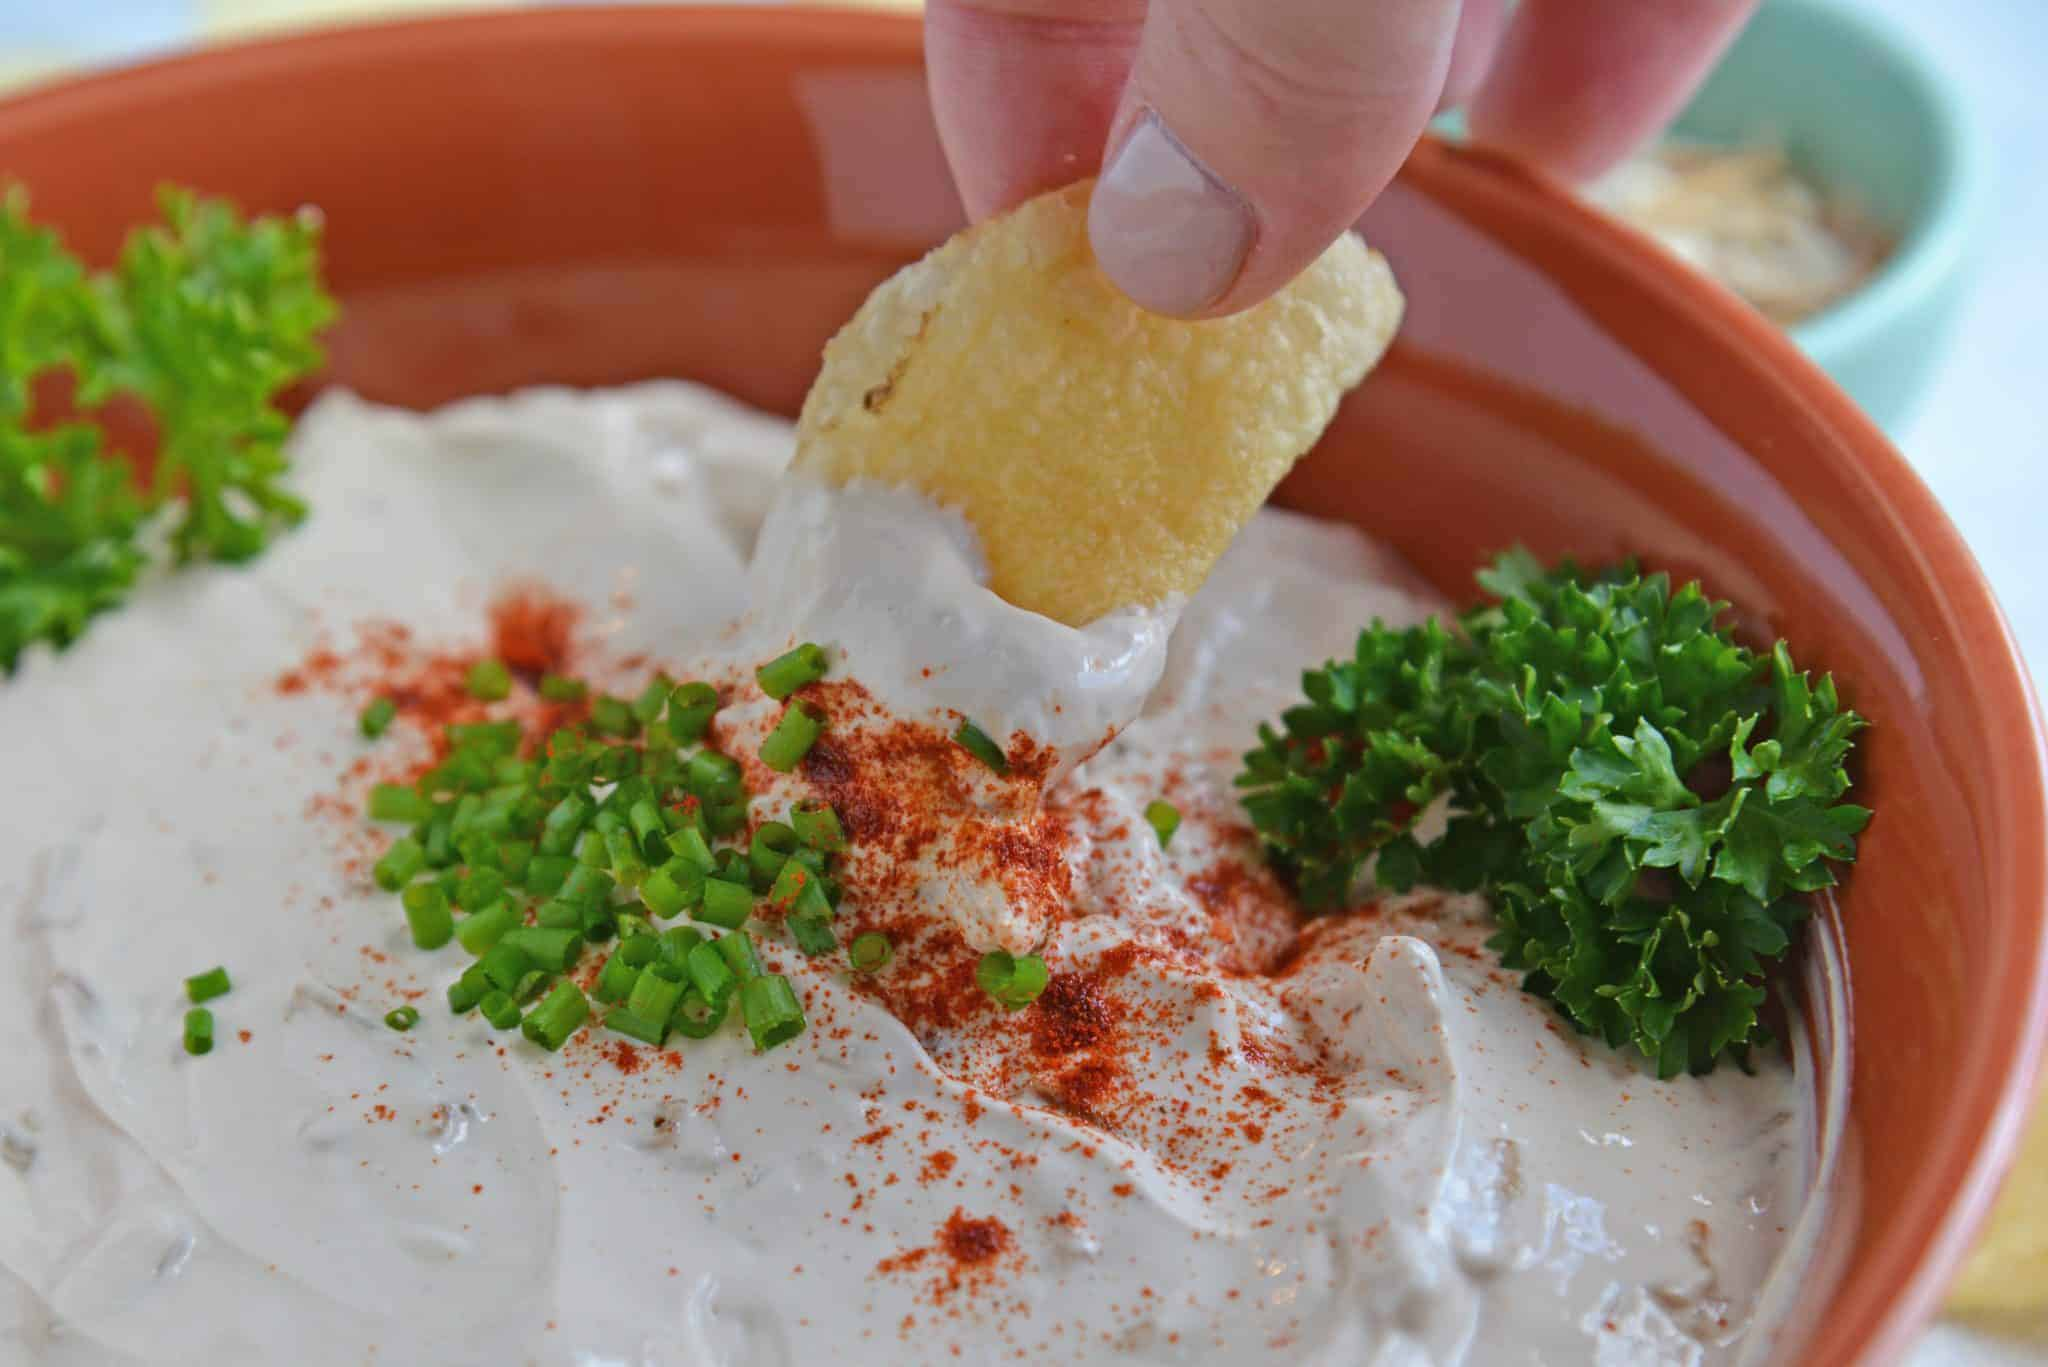 This French Onion Dip requires just 3 main ingredients and 5 minutes of prep. You'll never buy sour cream and onion dip from the store again! #frenchoniondip #partydip www.savoryexperiments.com